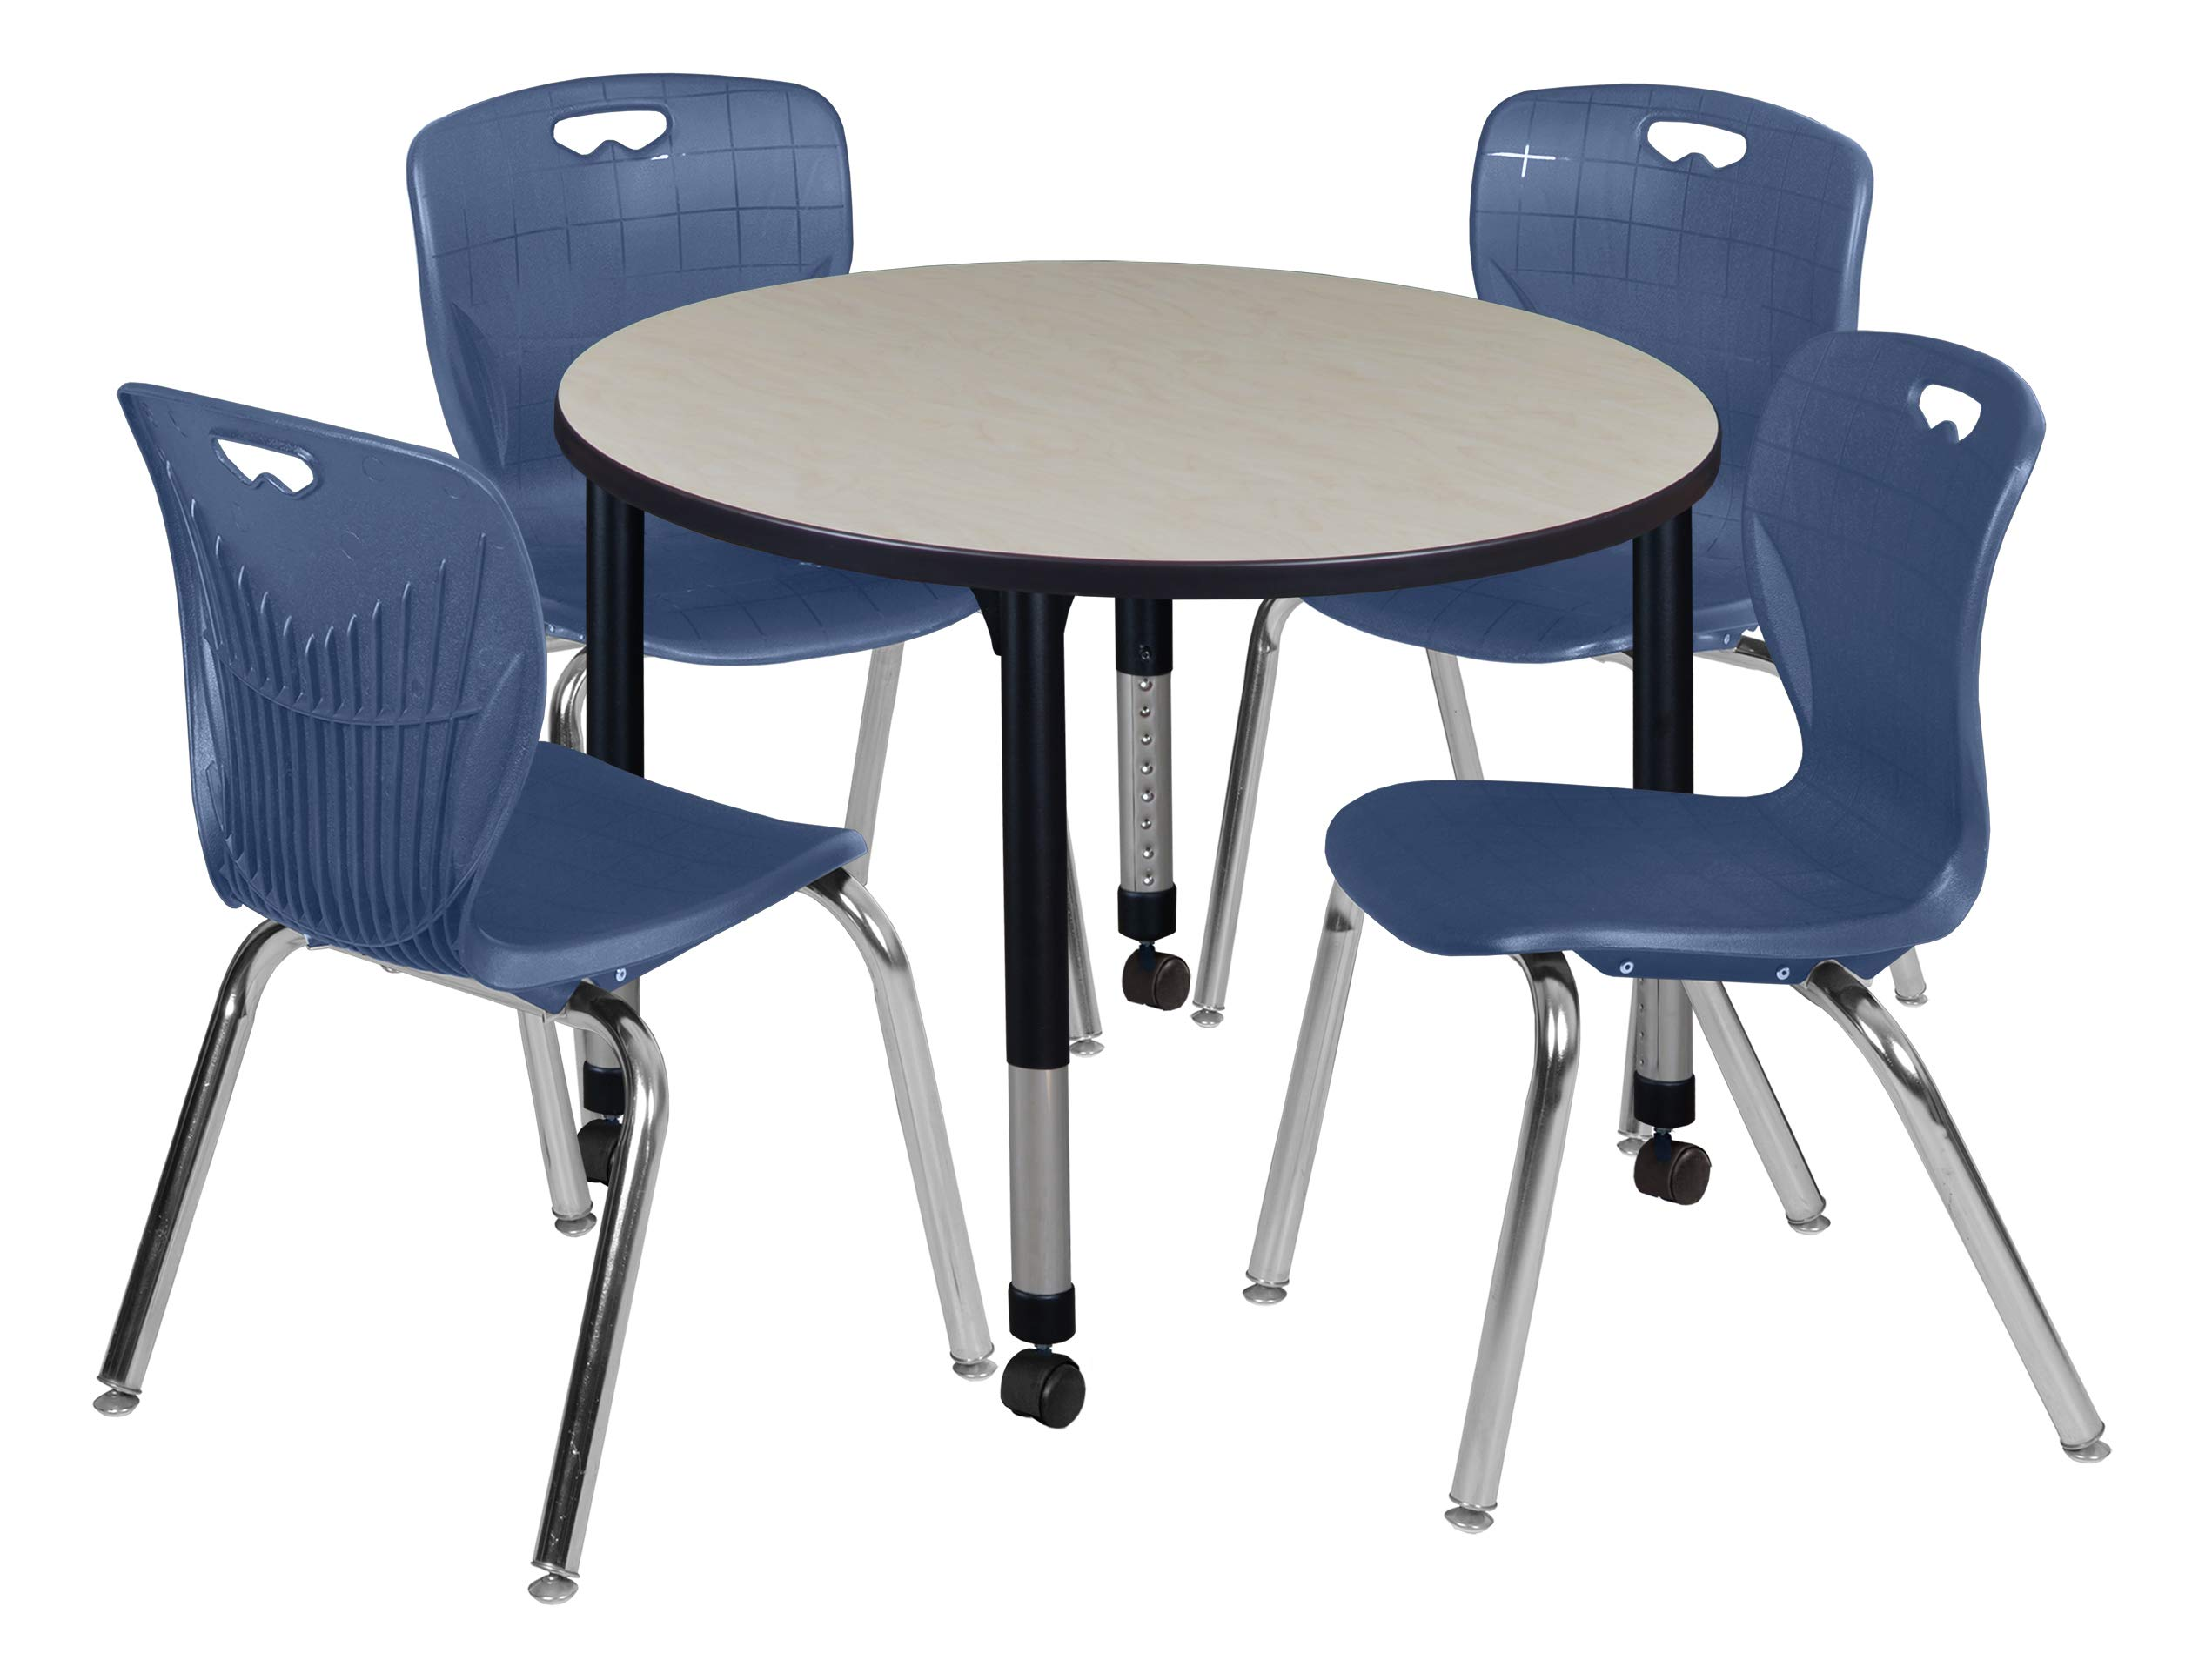 Regency TB42RNDPLAPCBK40NV Kee Height Adjustable Mobile Classroom Table Set with Four 18'' Andy Chairs 42'' Maple/Navy Blue